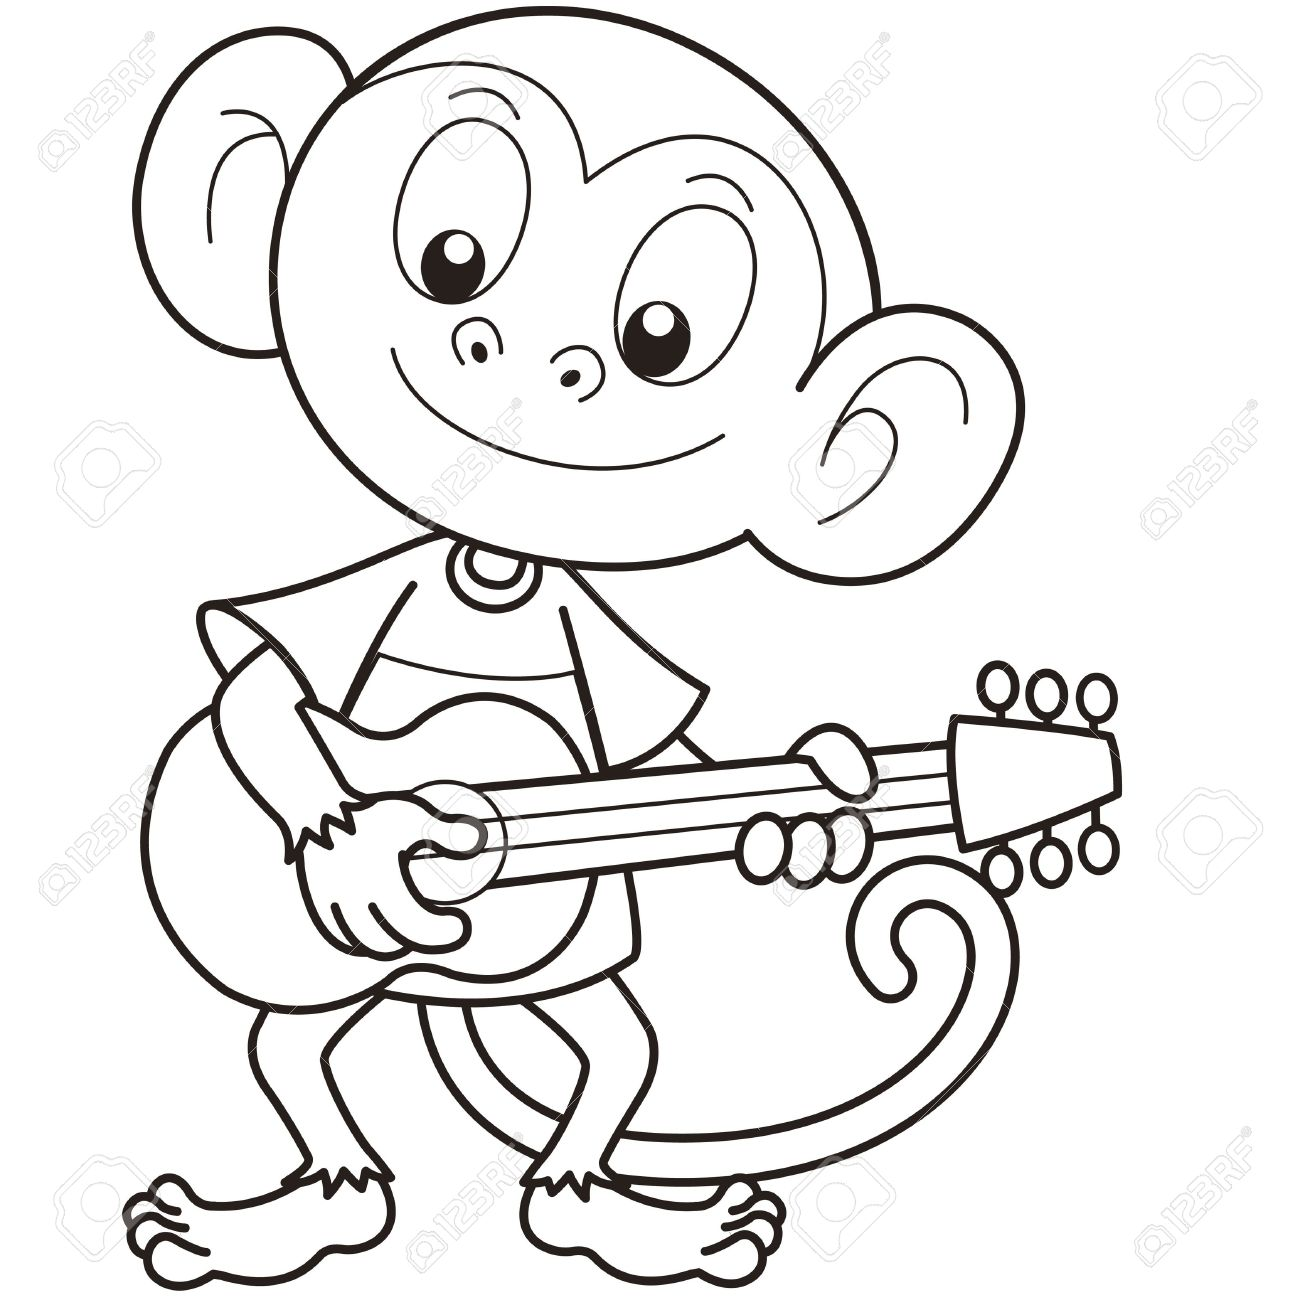 Cartoon Monkey Playing A Guitar Black And White Stock Vector